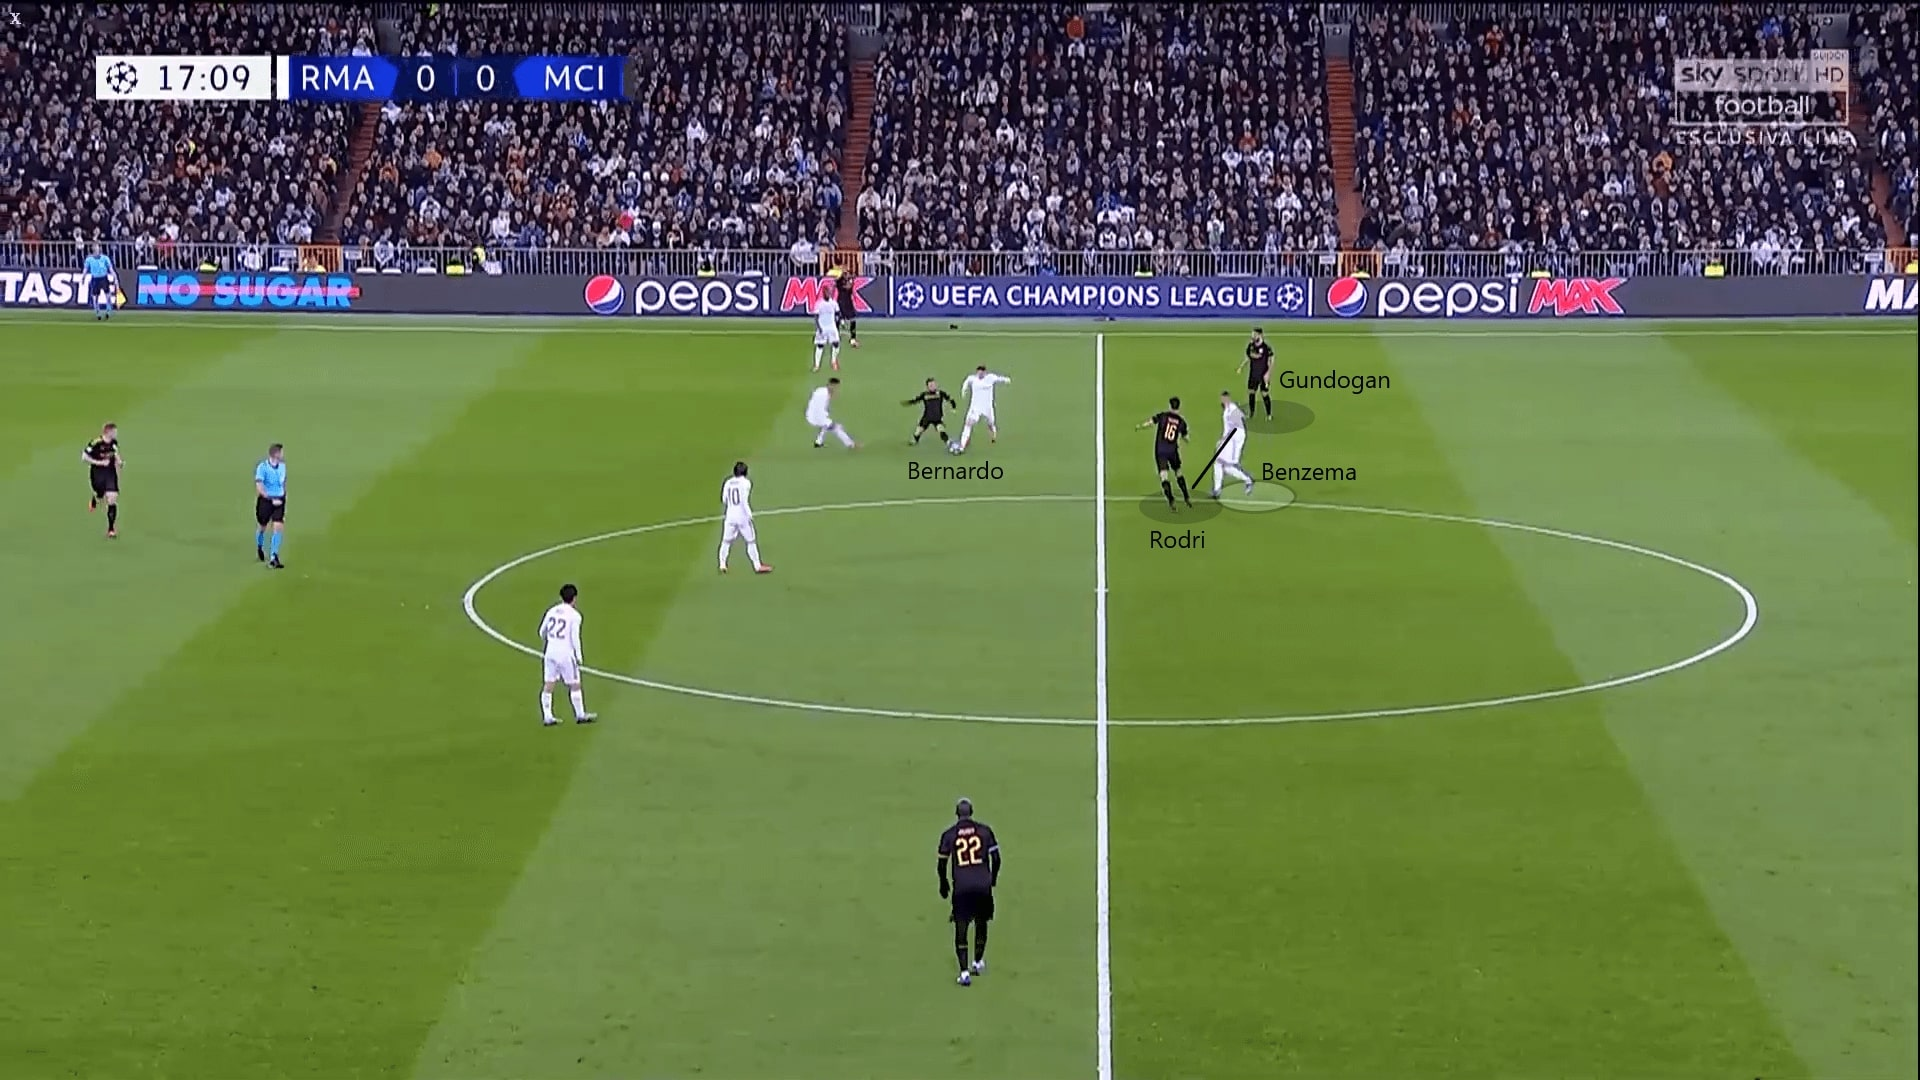 Champions League 2019/20: Real Madrid vs Manchester City - tactical analysis tactics